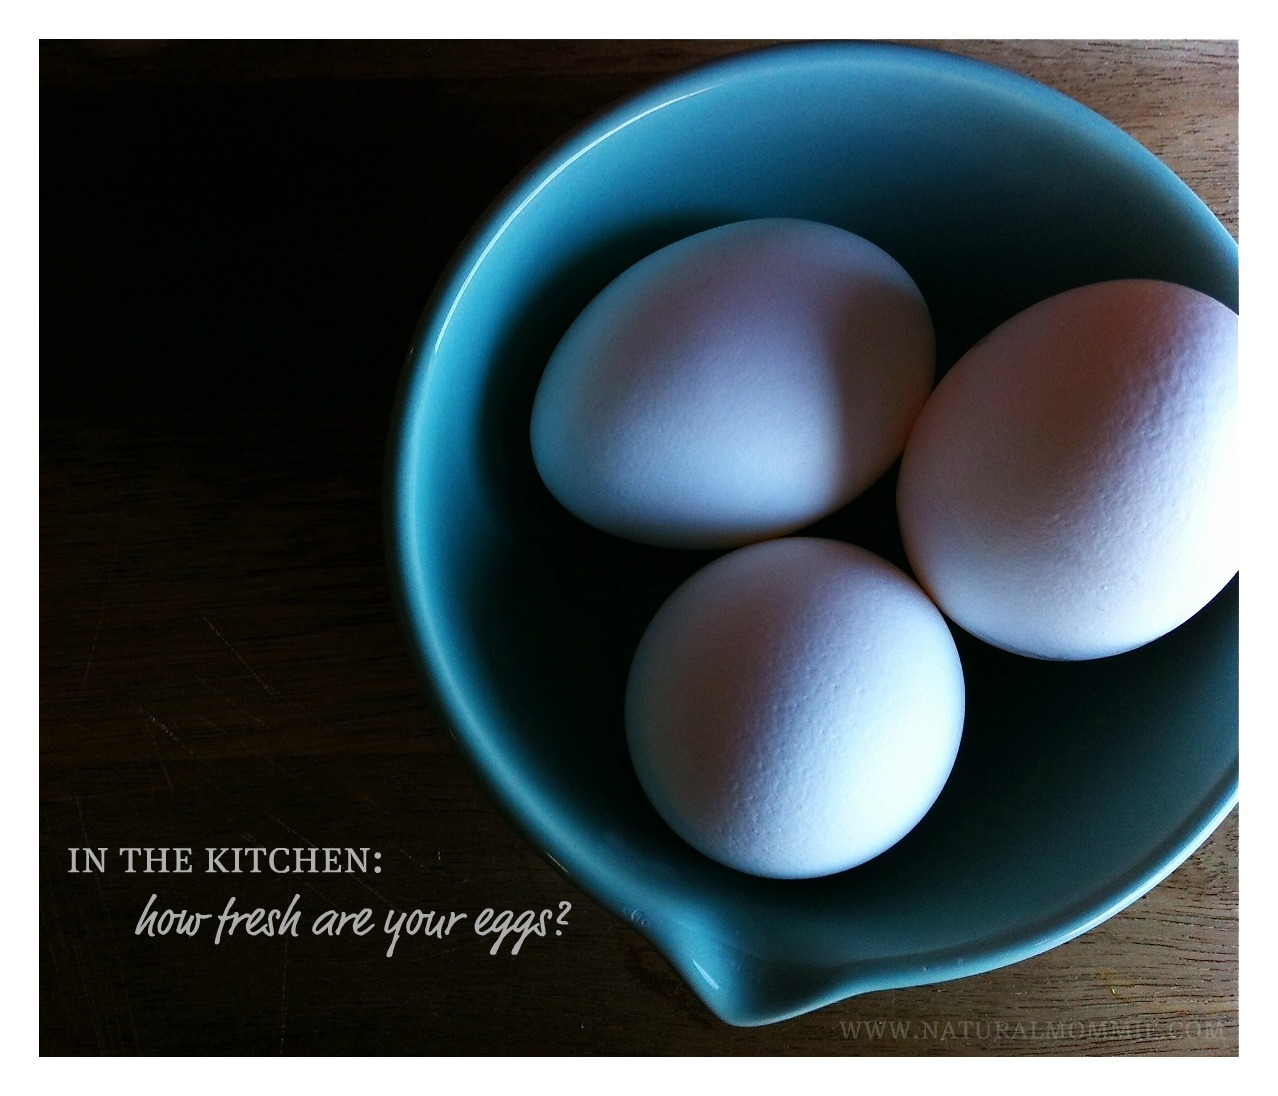 fresh eggs in the kitchen: how fresh are your eggs?